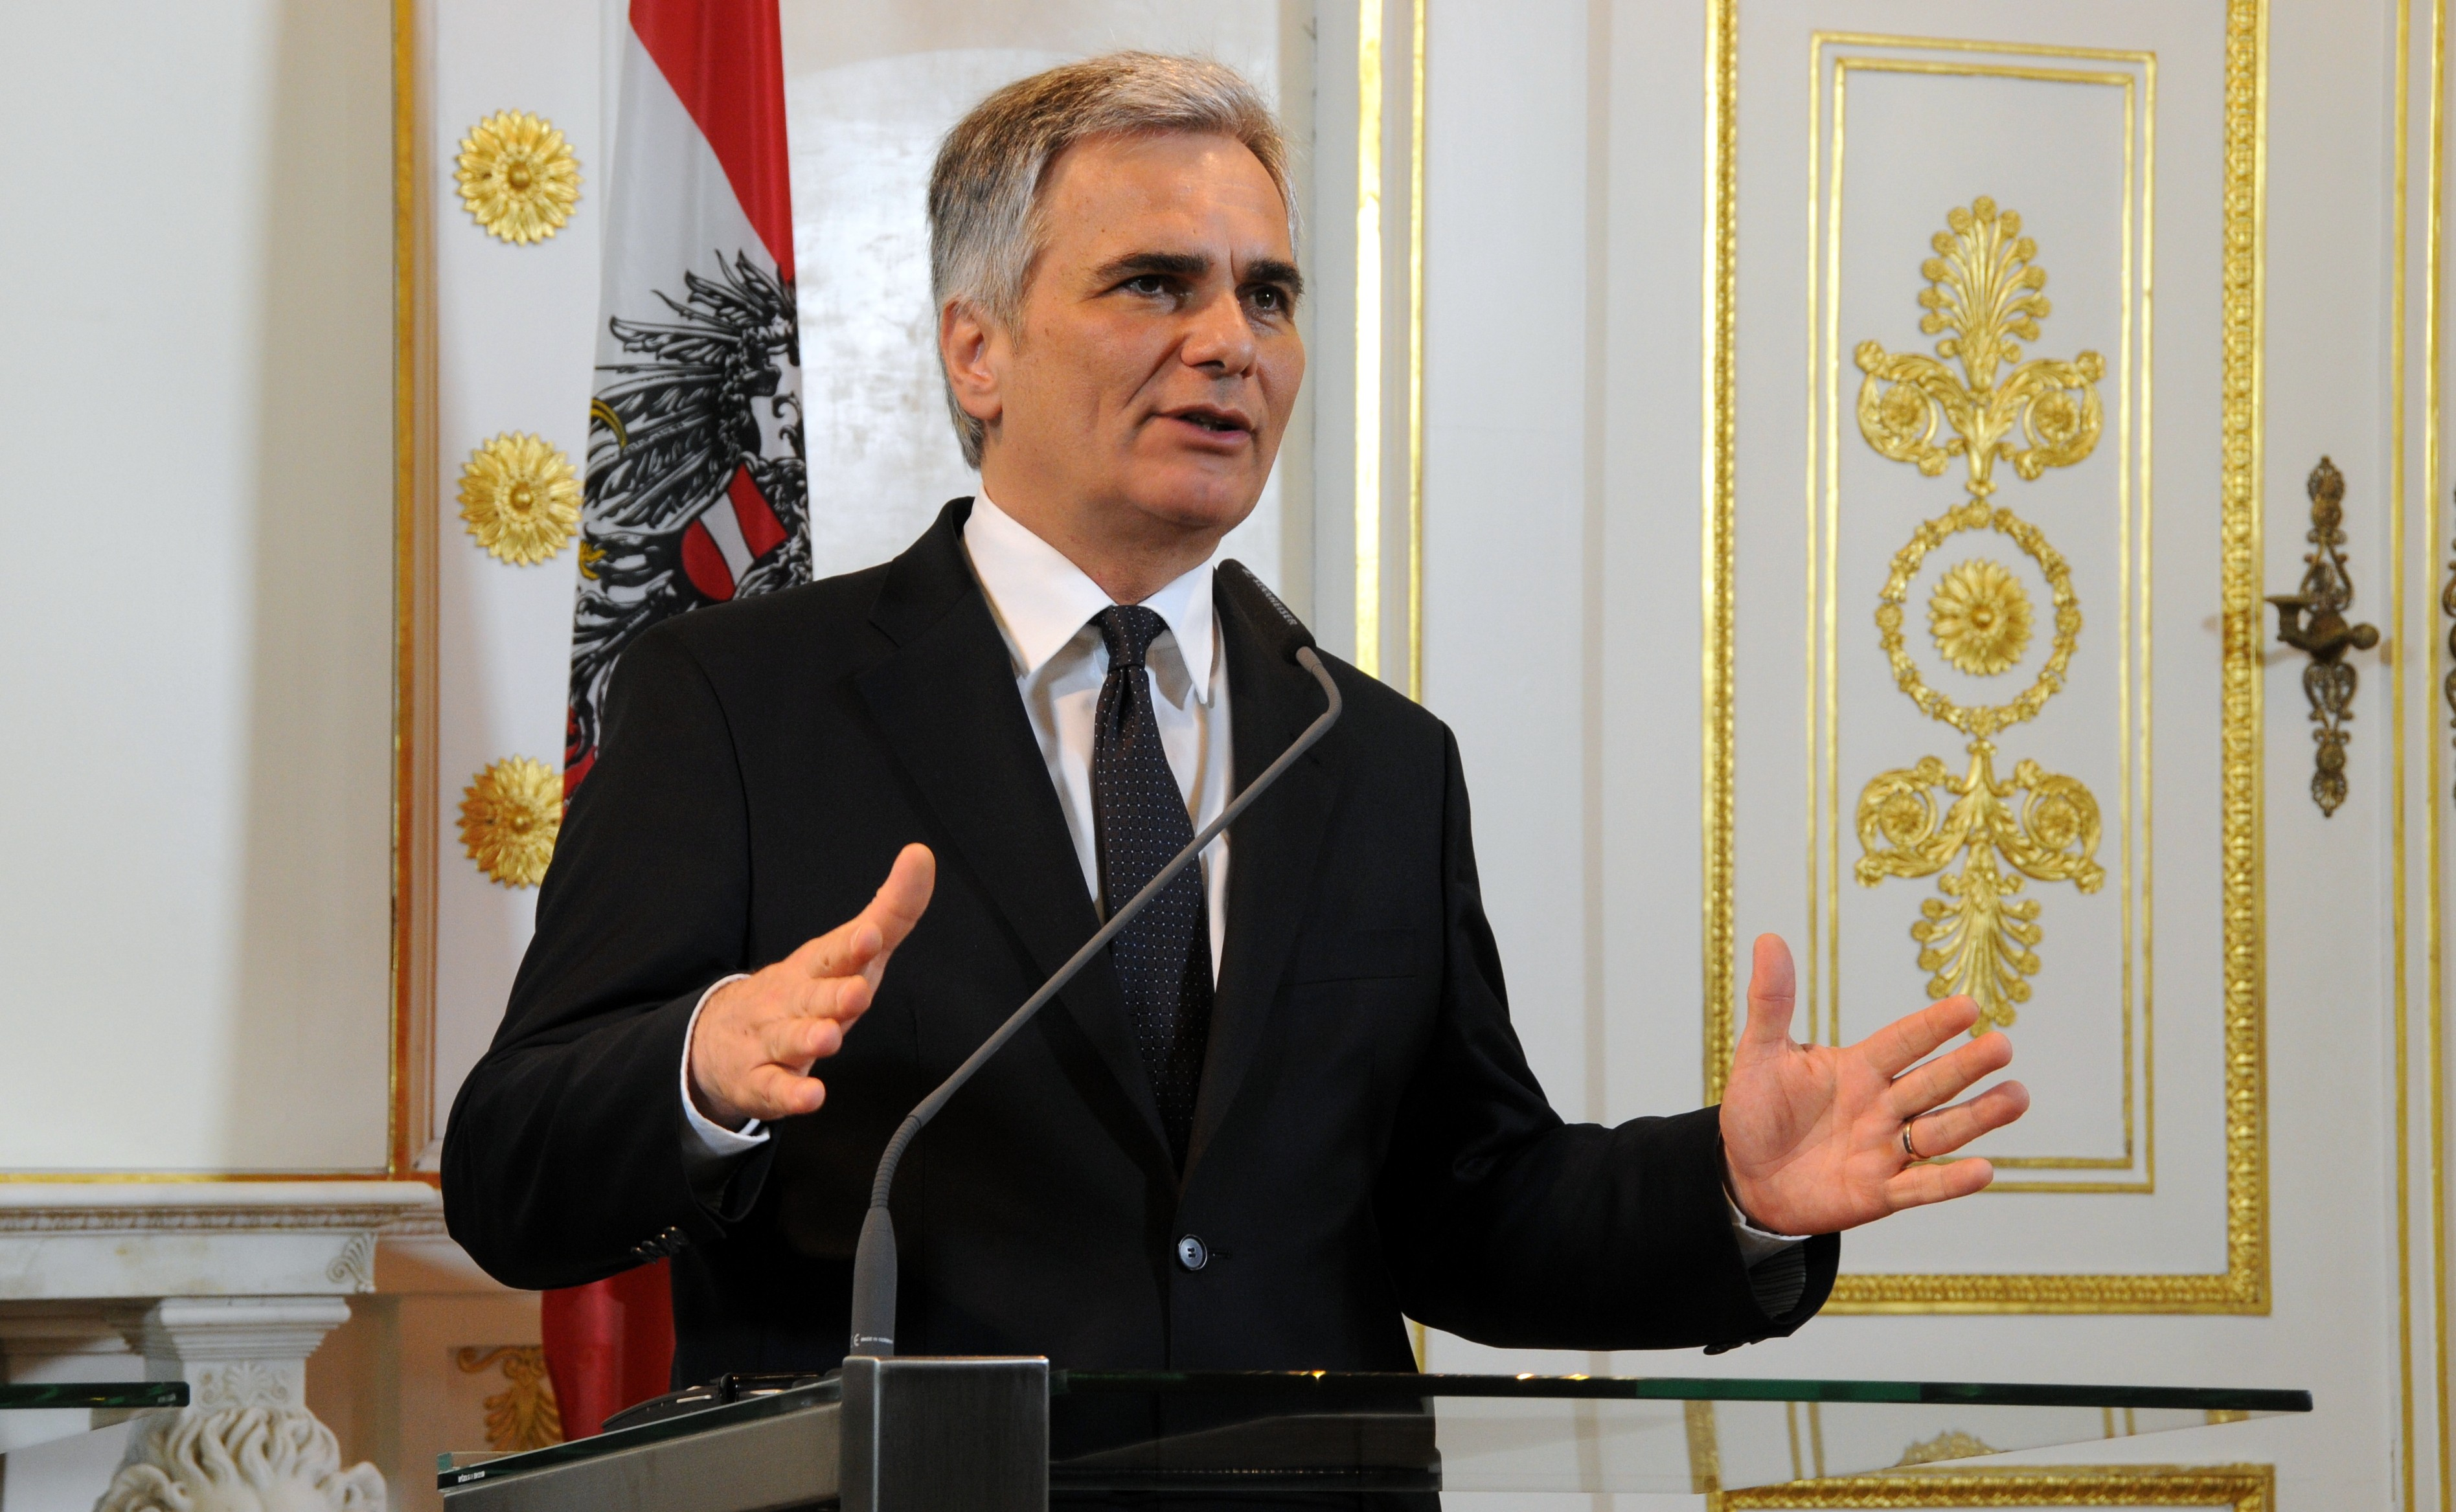 VIENNA, Jan. 31, 2013 Austrian Chancellor Werner Faymann gestures as he attends a joint press conference together with European Commission President Jose Manuel Barroso(Unseen) in Vienna, Austria on January 31, 2013. (Credit Image: ZUMAPRESS.com/Global Look Press)